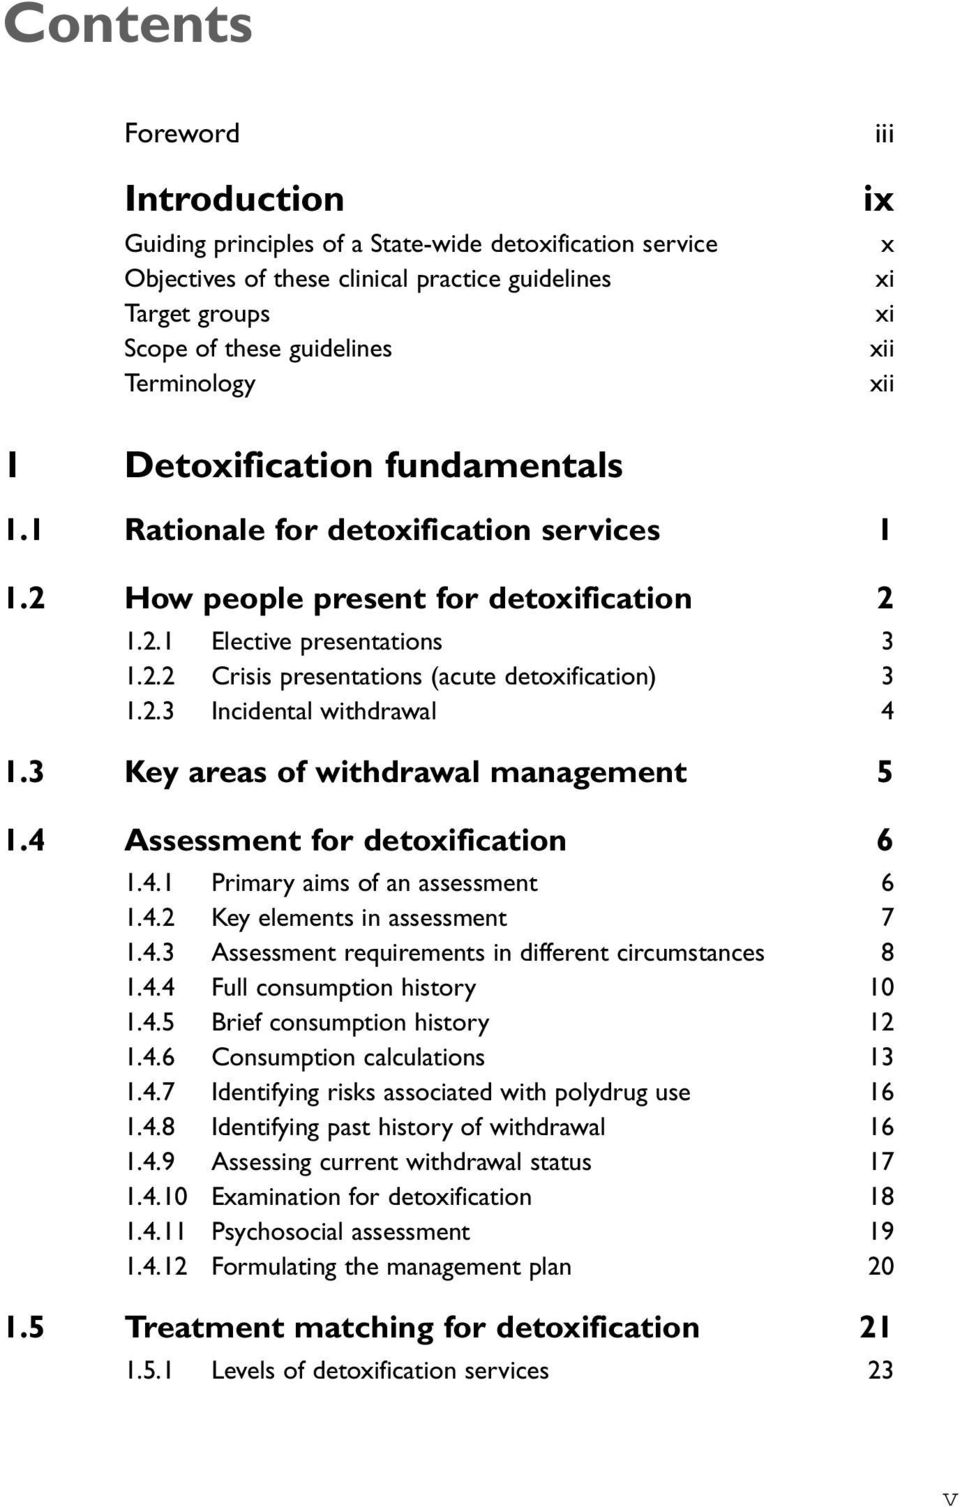 2.3 Incidental withdrawal 4 1.3 Key areas of withdrawal management 5 1.4 Assessment for detoxification 6 1.4.1 Primary aims of an assessment 6 1.4.2 Key elements in assessment 7 1.4.3 Assessment requirements in different circumstances 8 1.